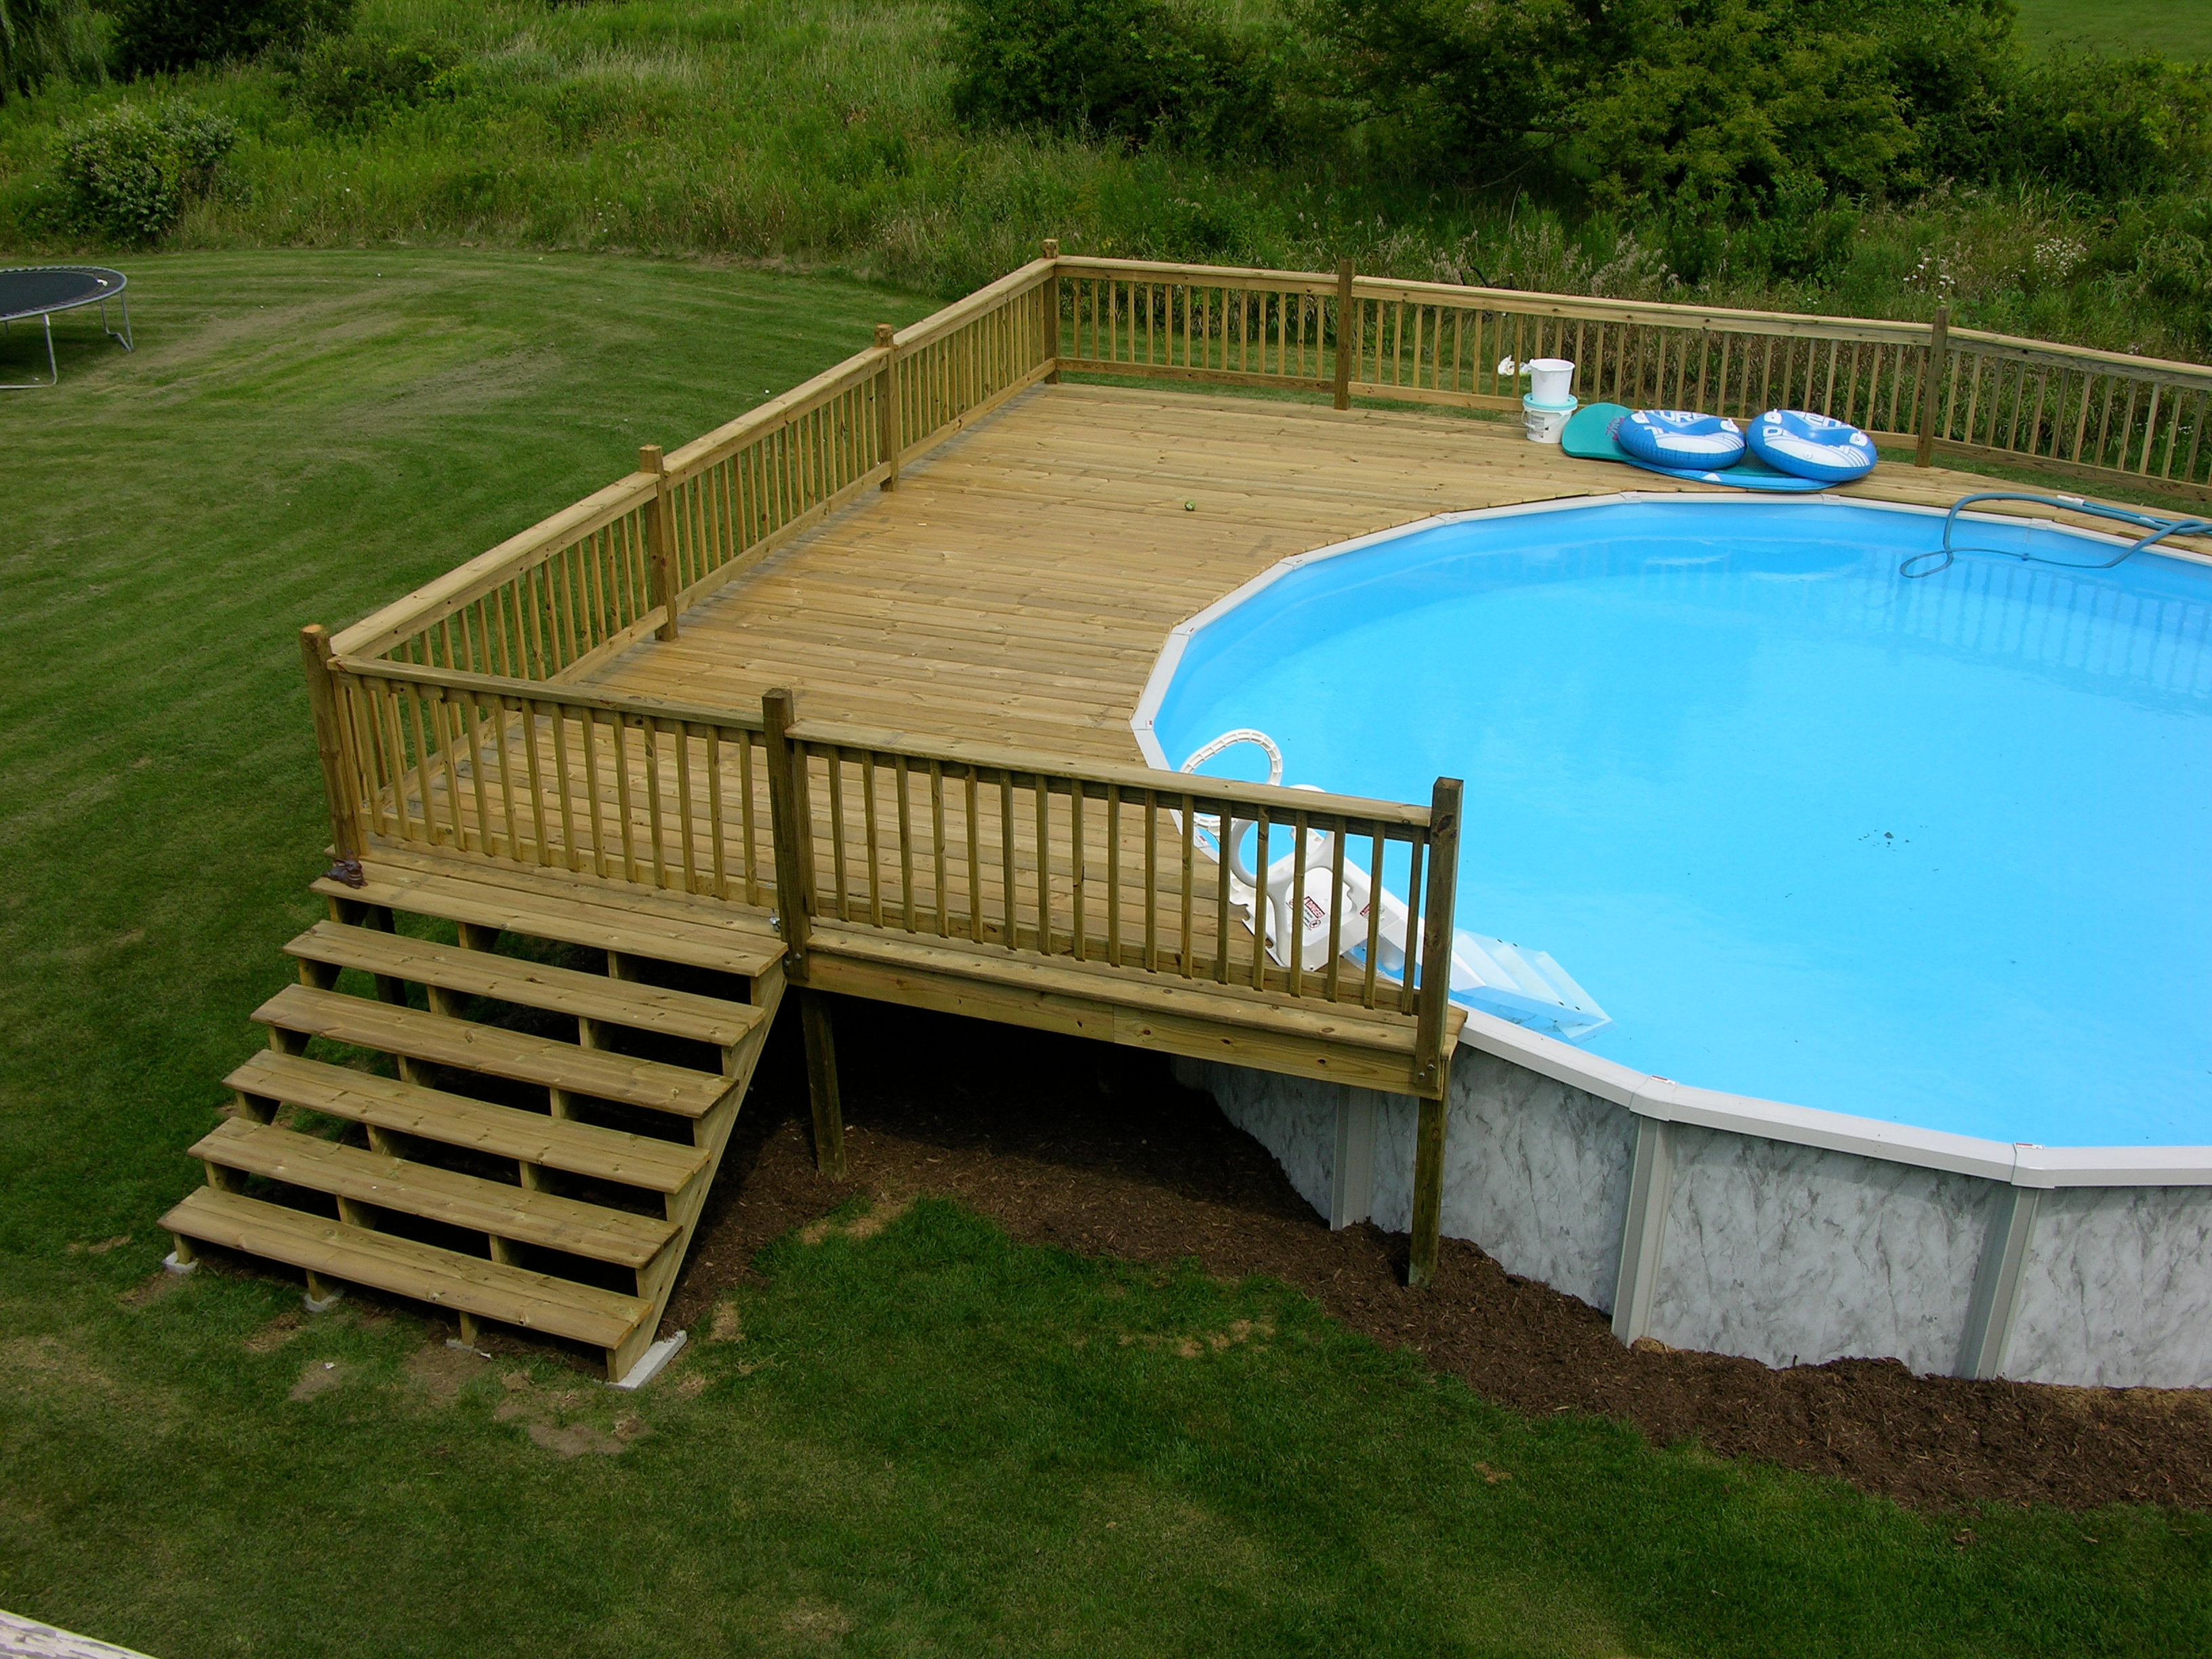 How to build a deck around an above ground pool with ask for How to build a deck around a pool